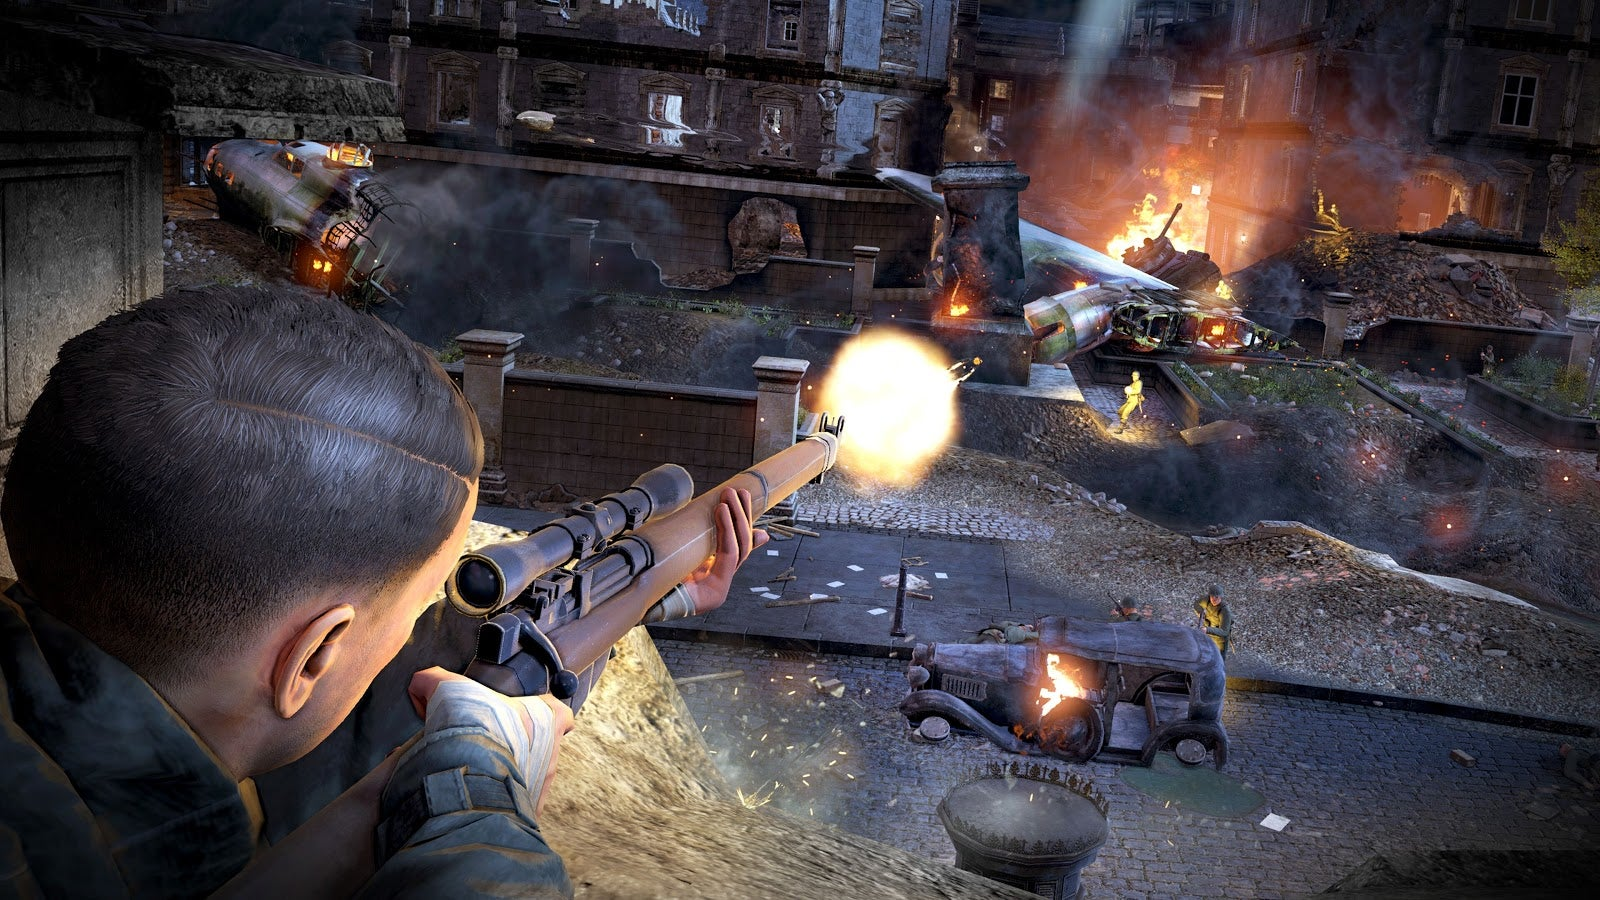 Sniper Elite V2 Doesn't Hold Up, Even In Pretty Remaster Form